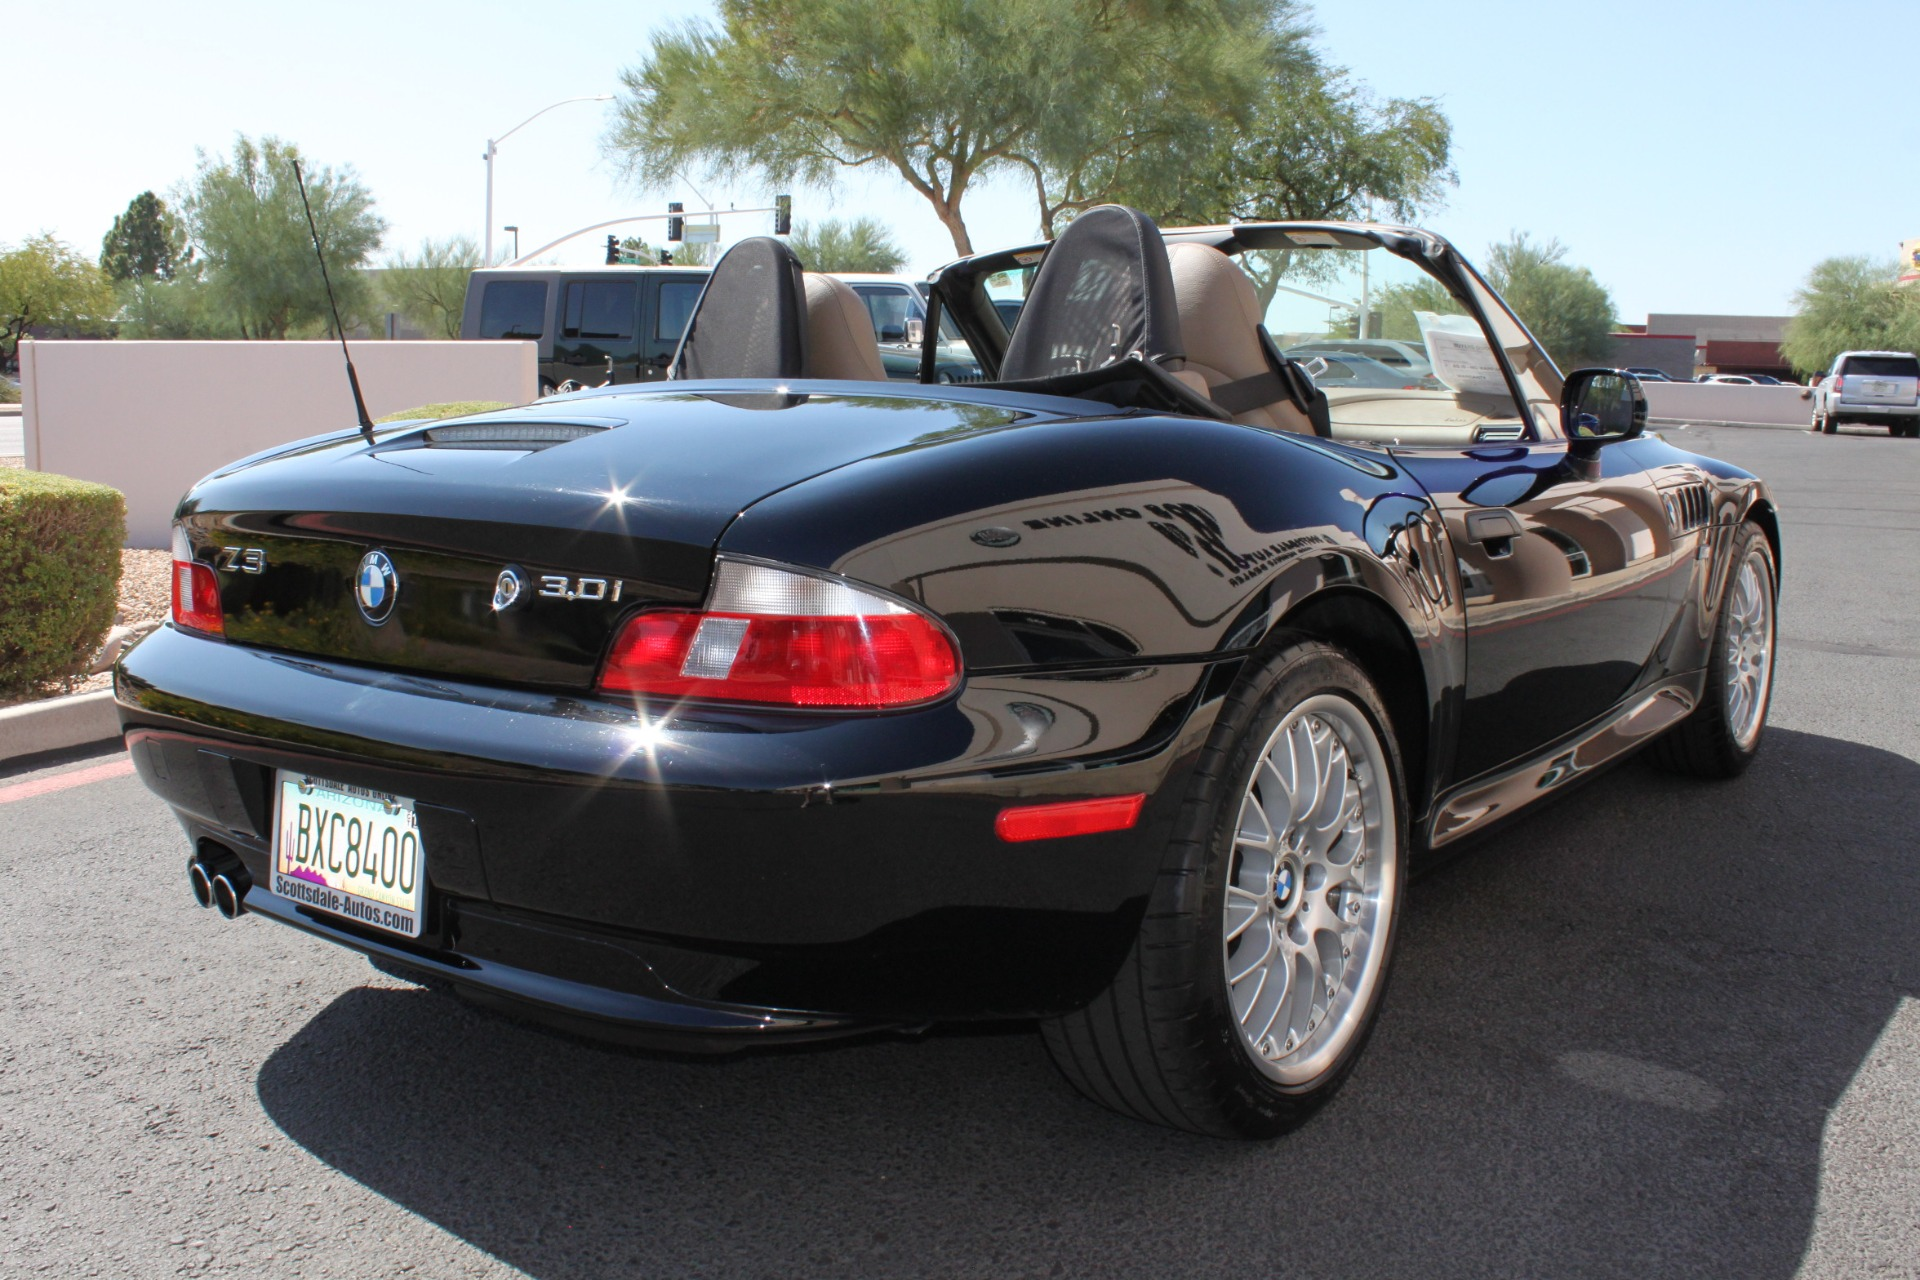 Used-2001-BMW-Z3-Roadster-30i-Acura